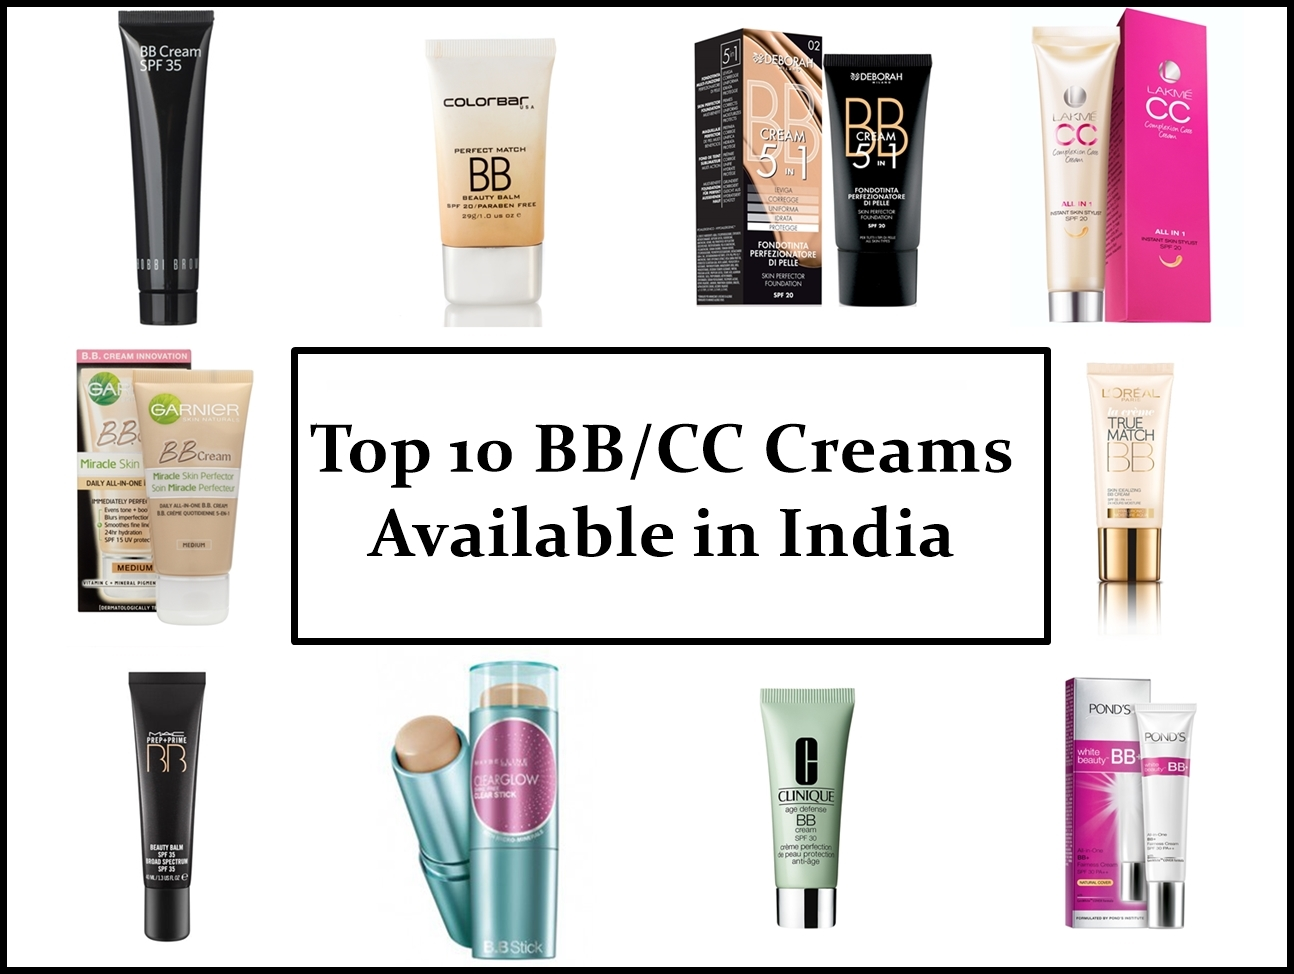 Top 10 Bb Cc Creams In India Prices Buy Online New Love Makeup Acnes Uv Tint Spf 35